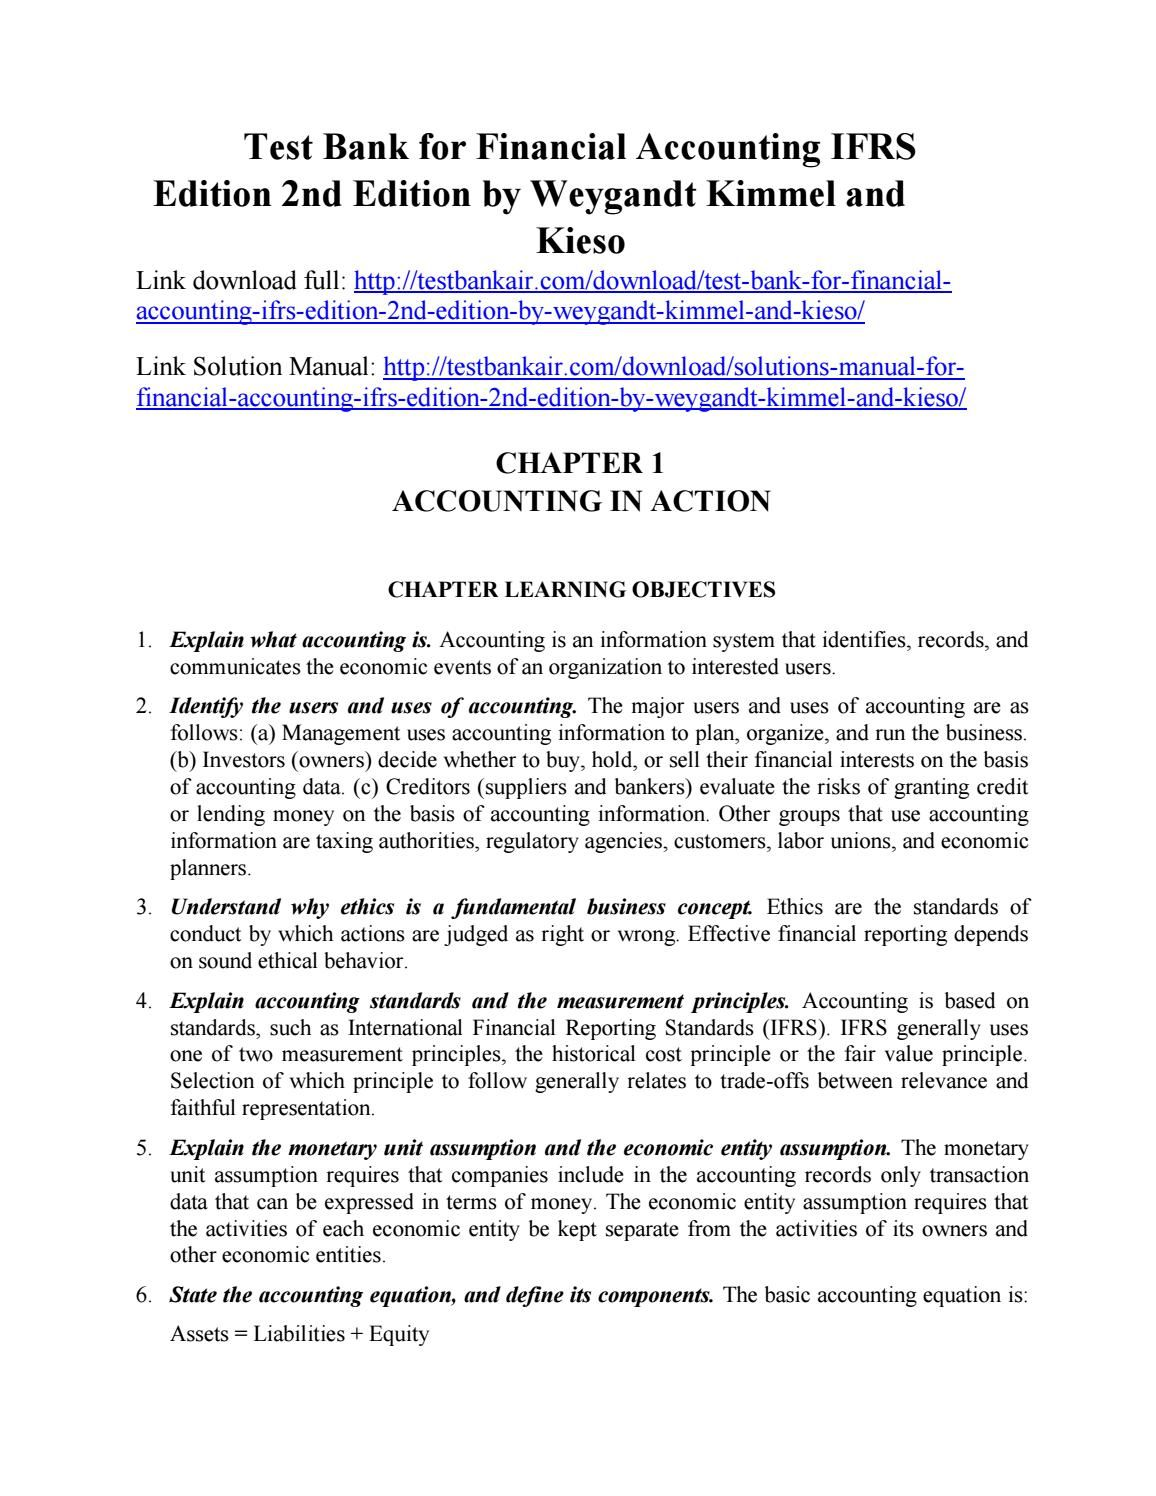 Download test bank for financial accounting ifrs edition 2nd edition by  weygandt kimmel and kieso